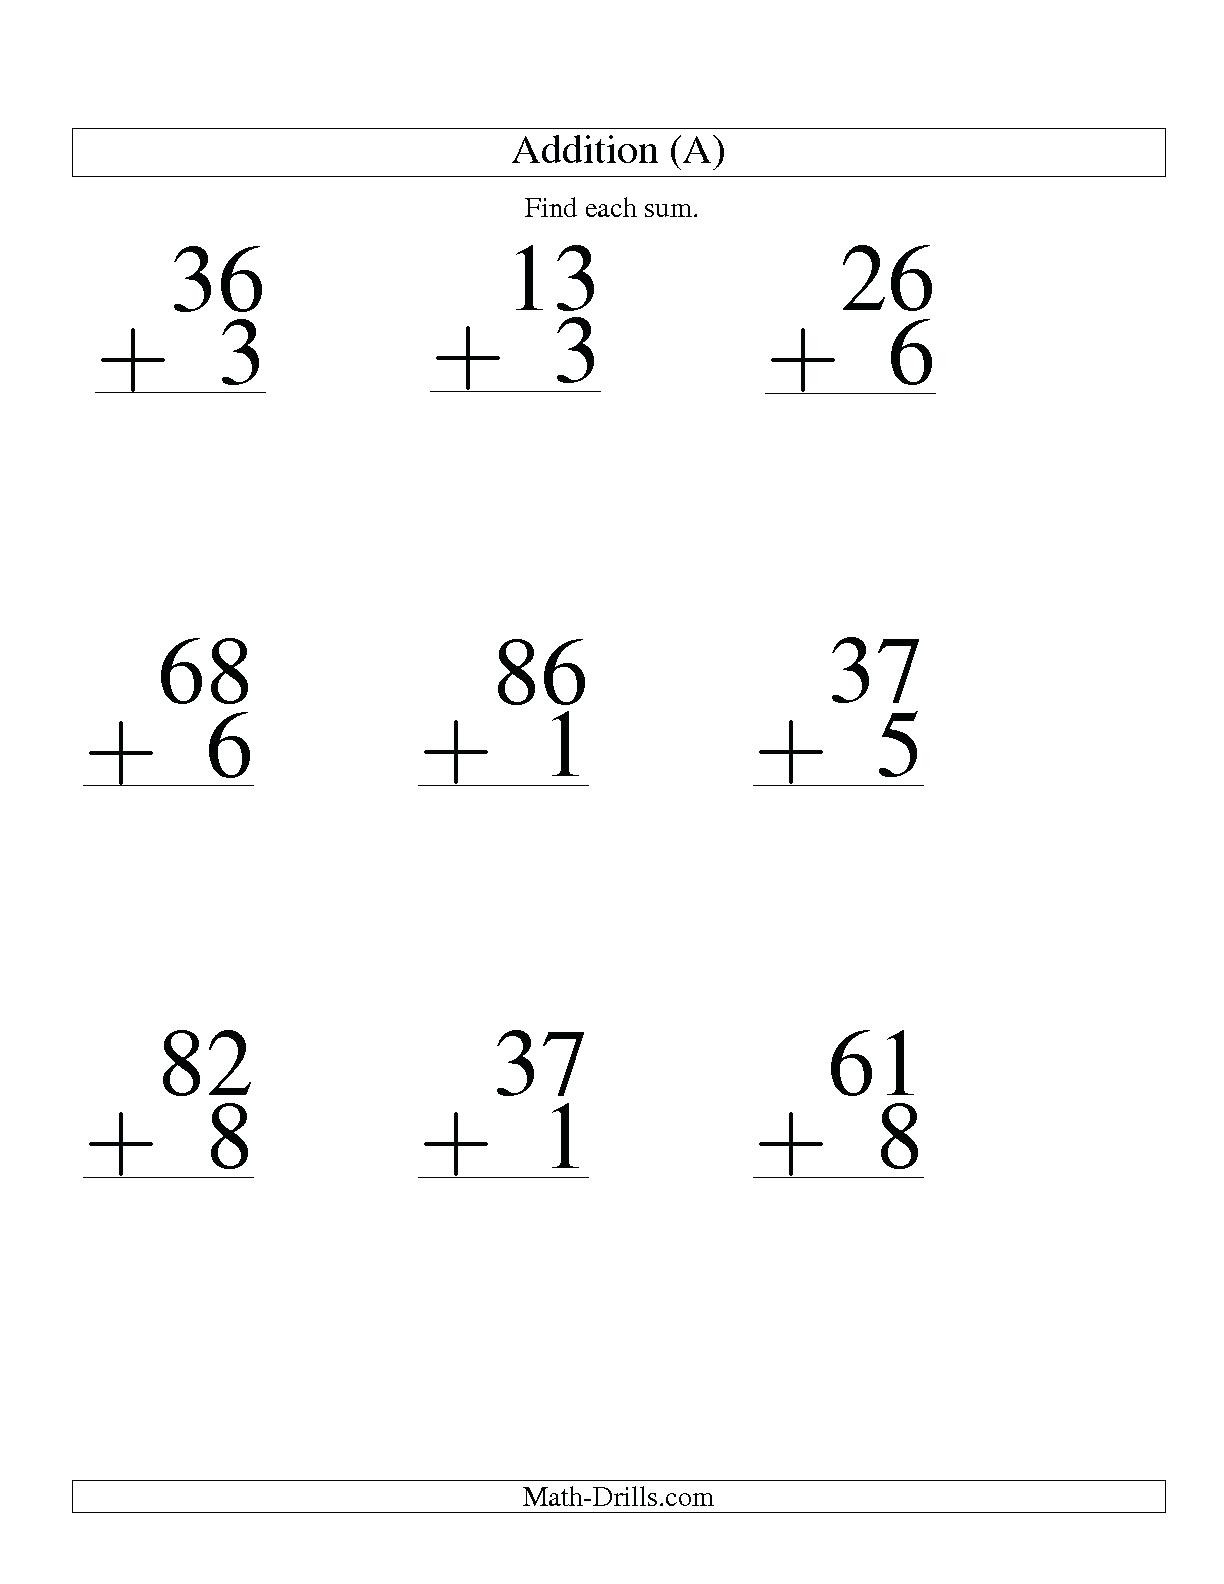 hight resolution of 5 Free Math Worksheets First Grade 1 Addition Adding 2 Digit Plus 1 Digit  No Regrouping - apocalomegaproductions.com